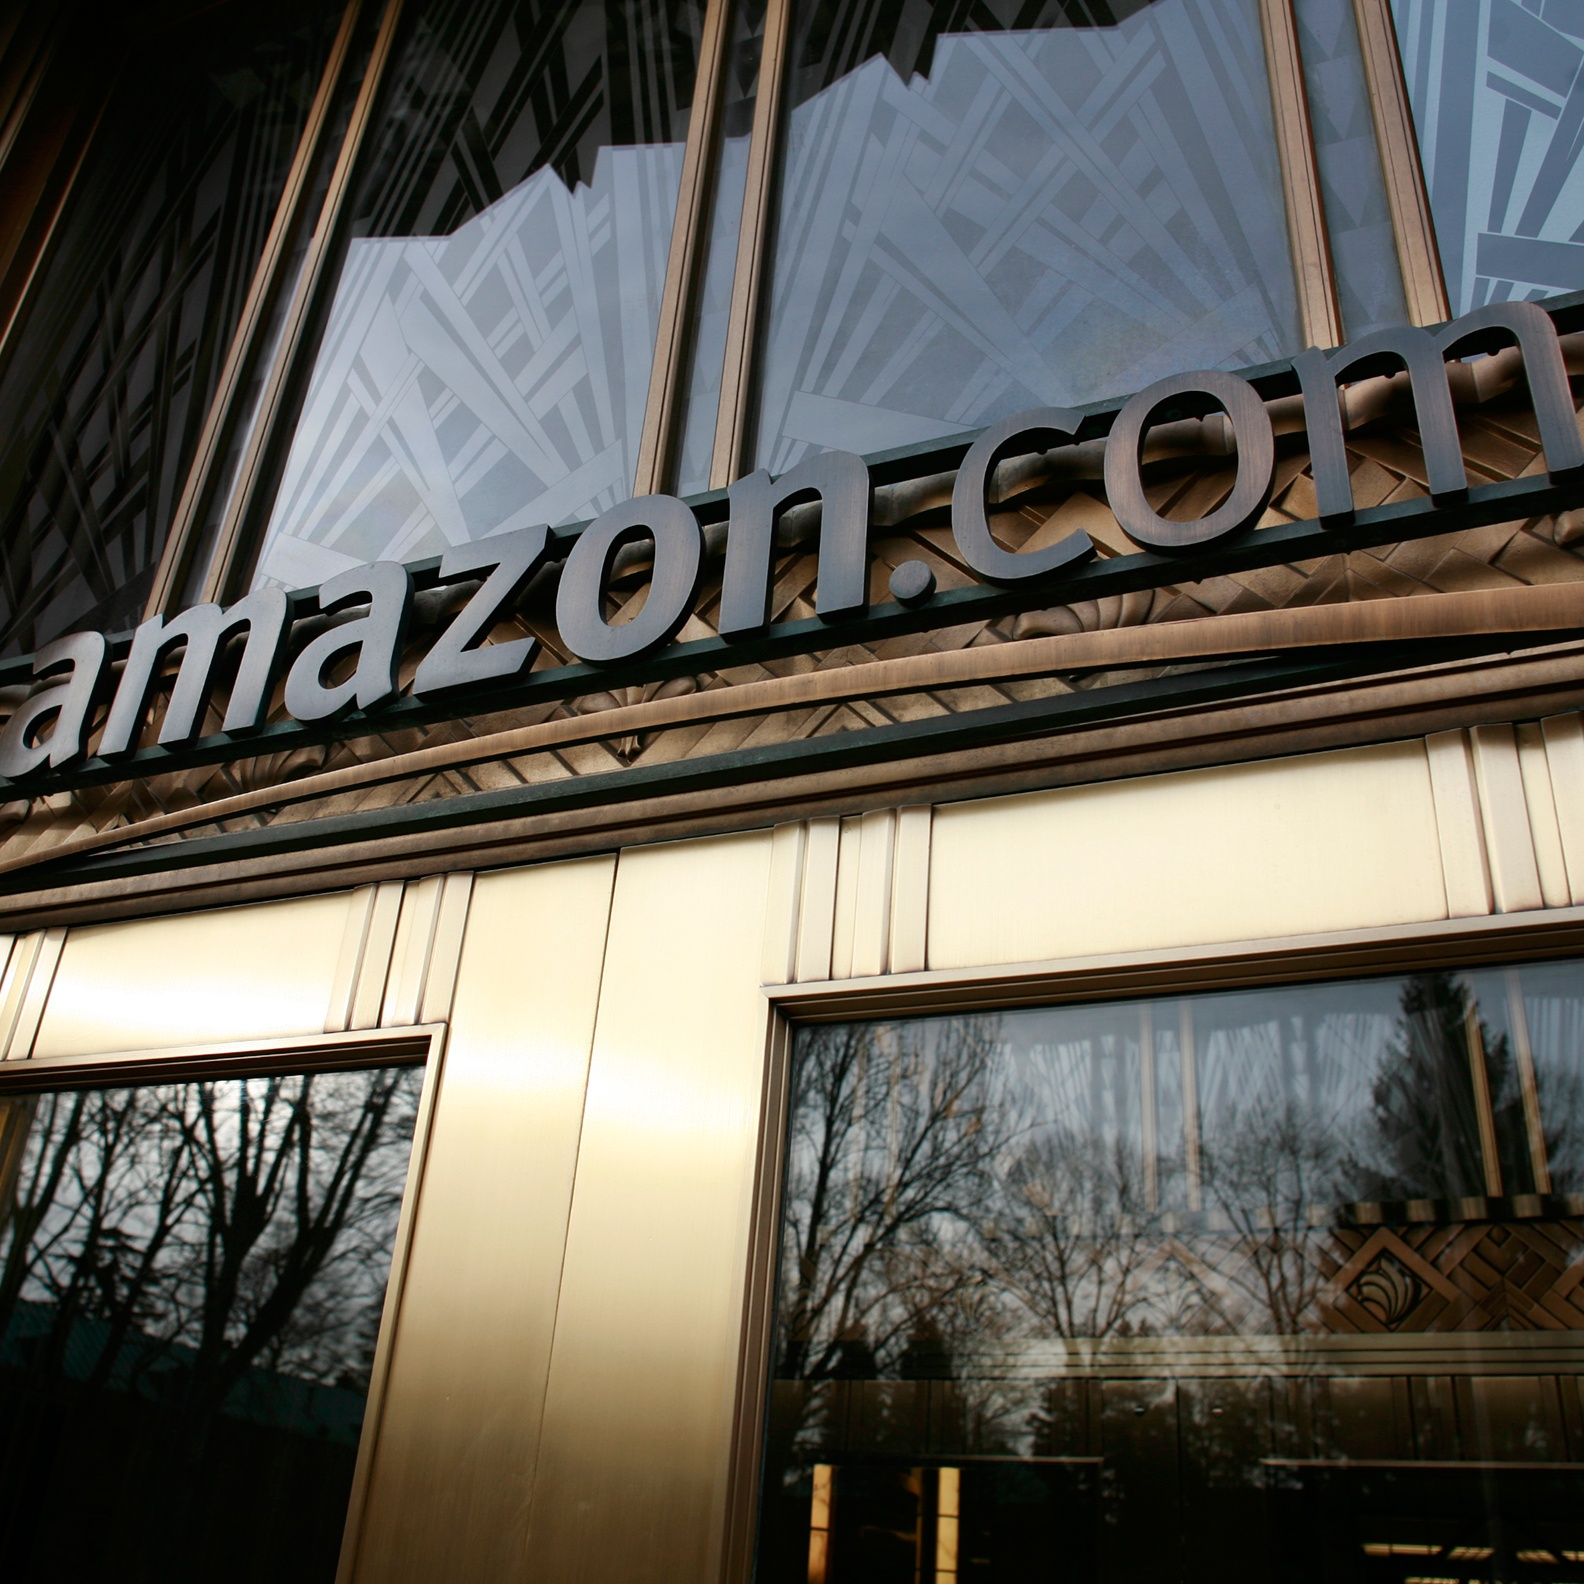 Amazon - Threat or Opportunity?